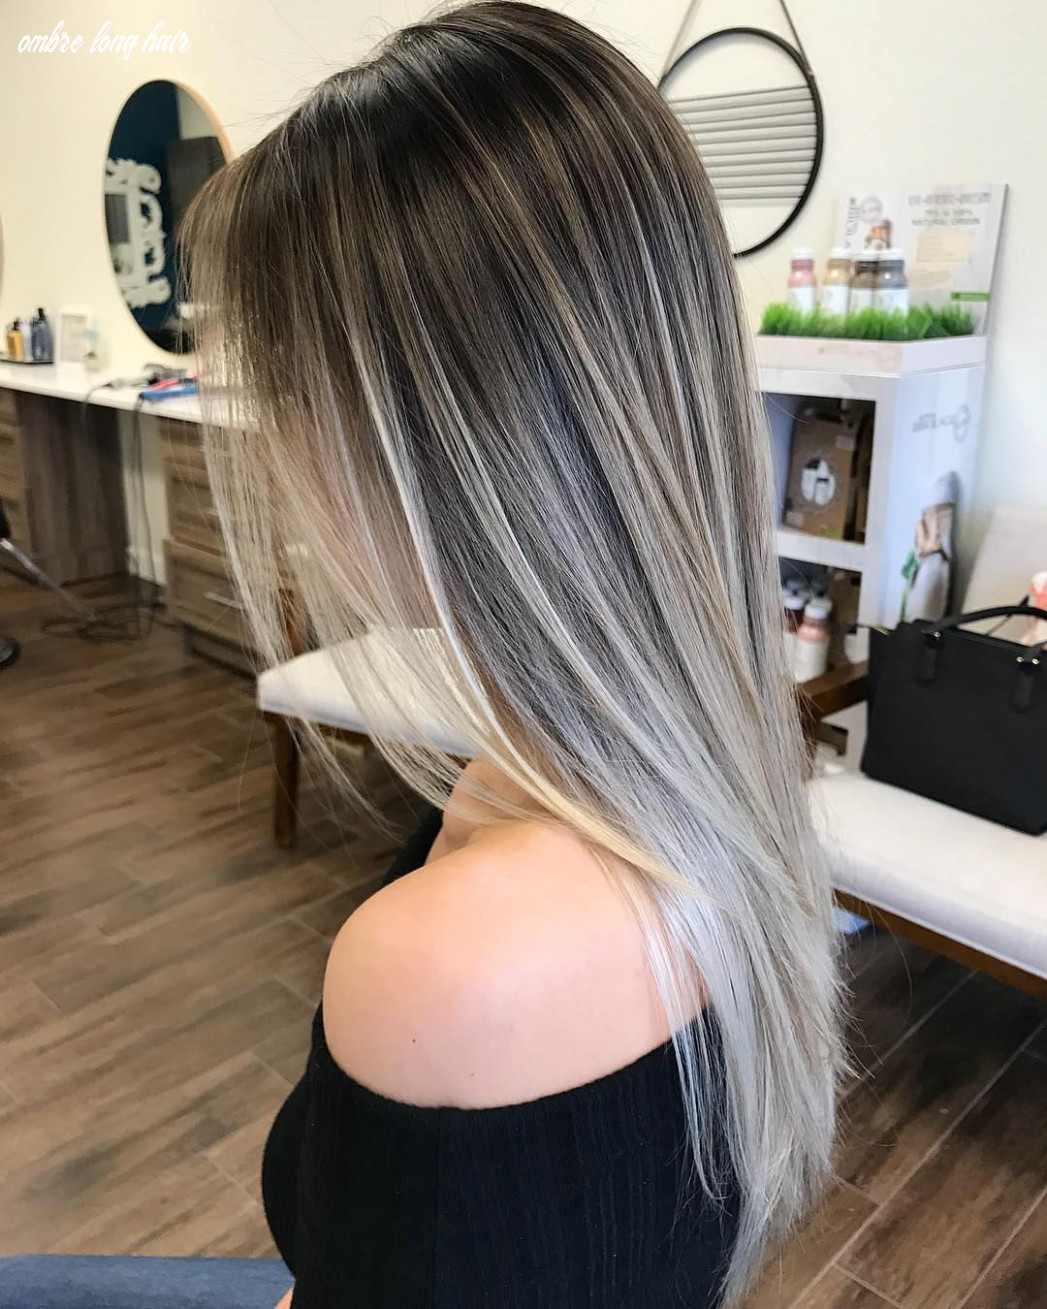 12 balayage ombre long hair styles from subtle to stunning, long